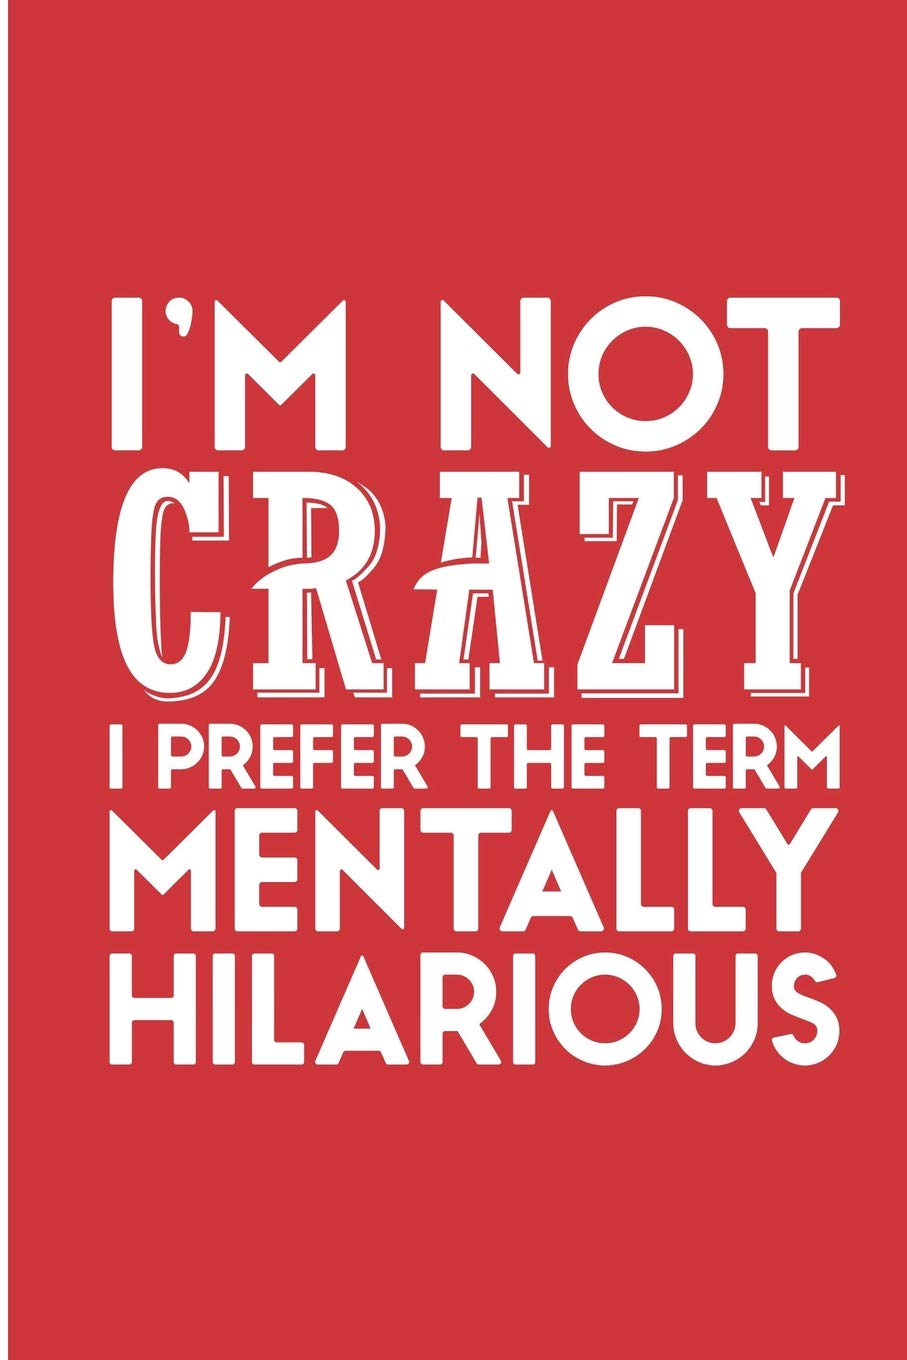 I M Not Crazy I Prefer The Term Mentally Hilarious Funny Sayings Blank Lined Note Book Coleman Jen V 9781077408241 Amazon Com Books